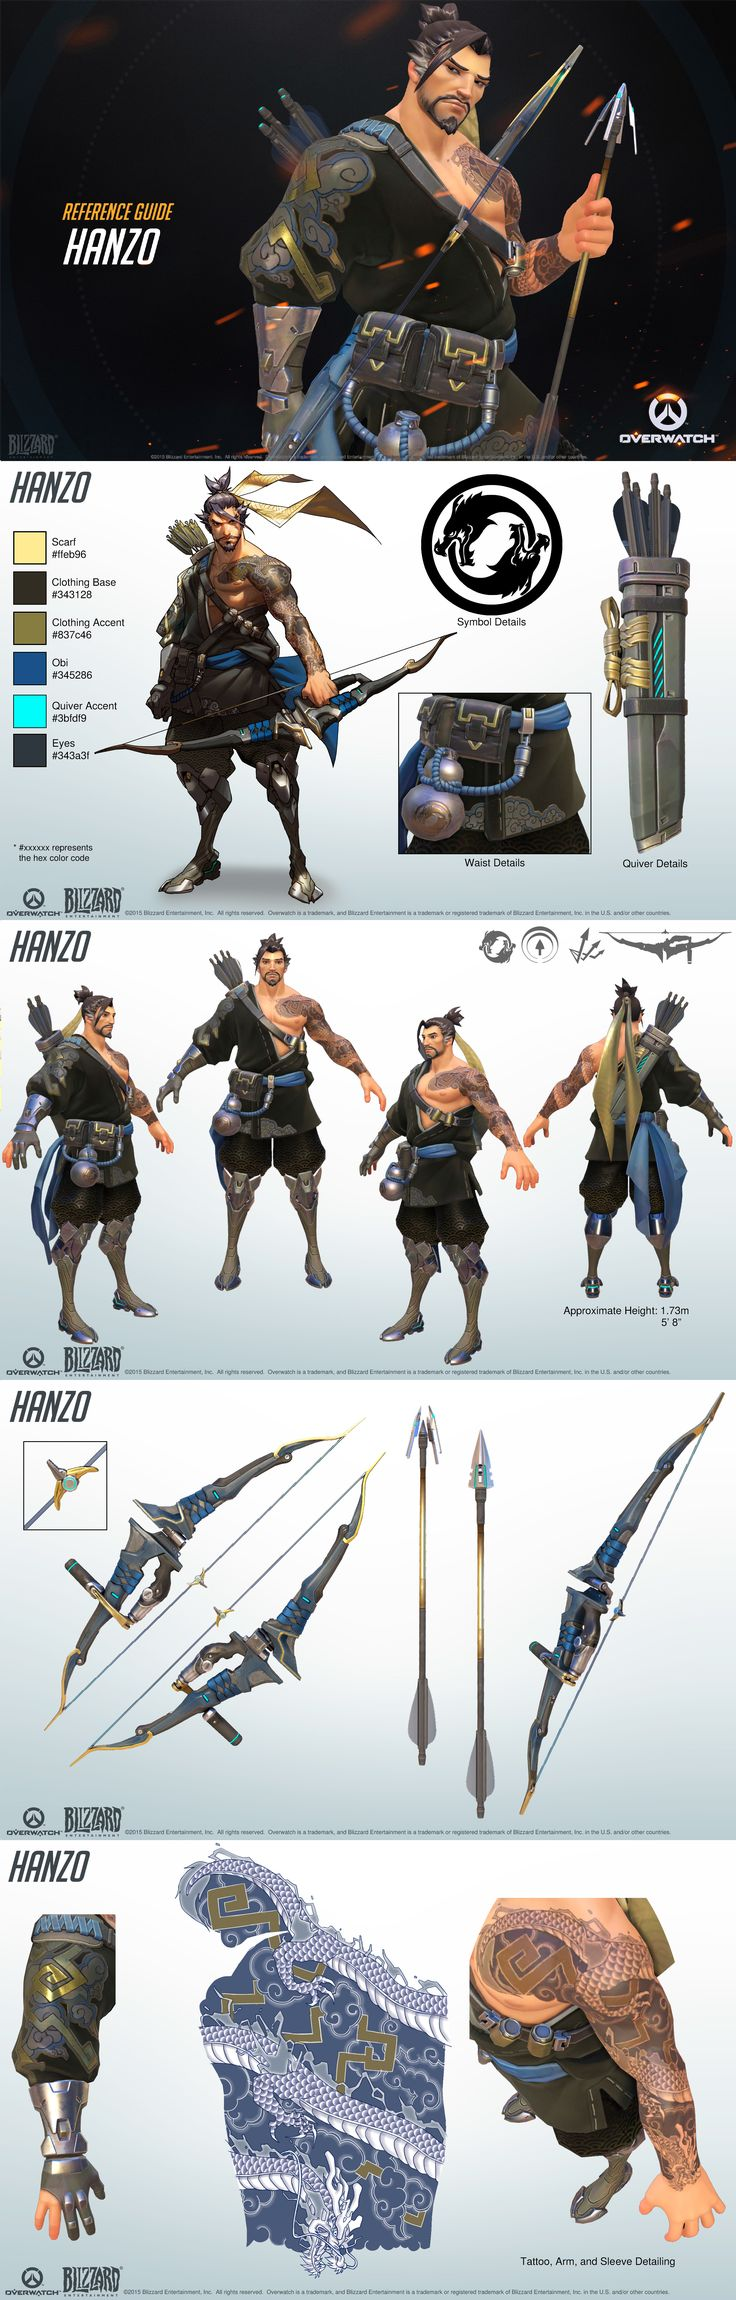 Character Design Pdf Books : Overwatch hanzo reference guide character designs